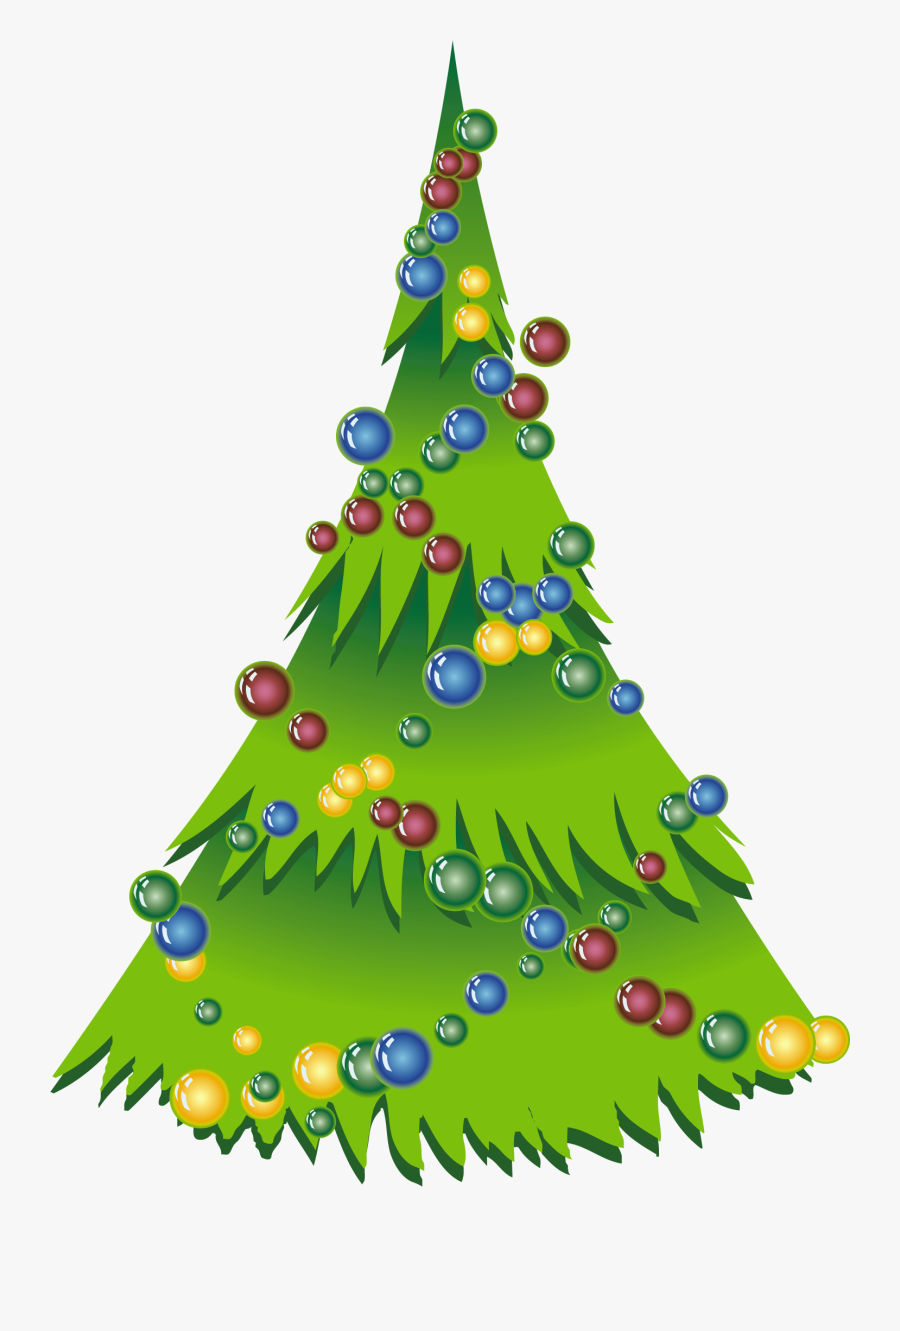 Christmas Simple Tree Png Clipart - Christmas Tree Png, Transparent Clipart